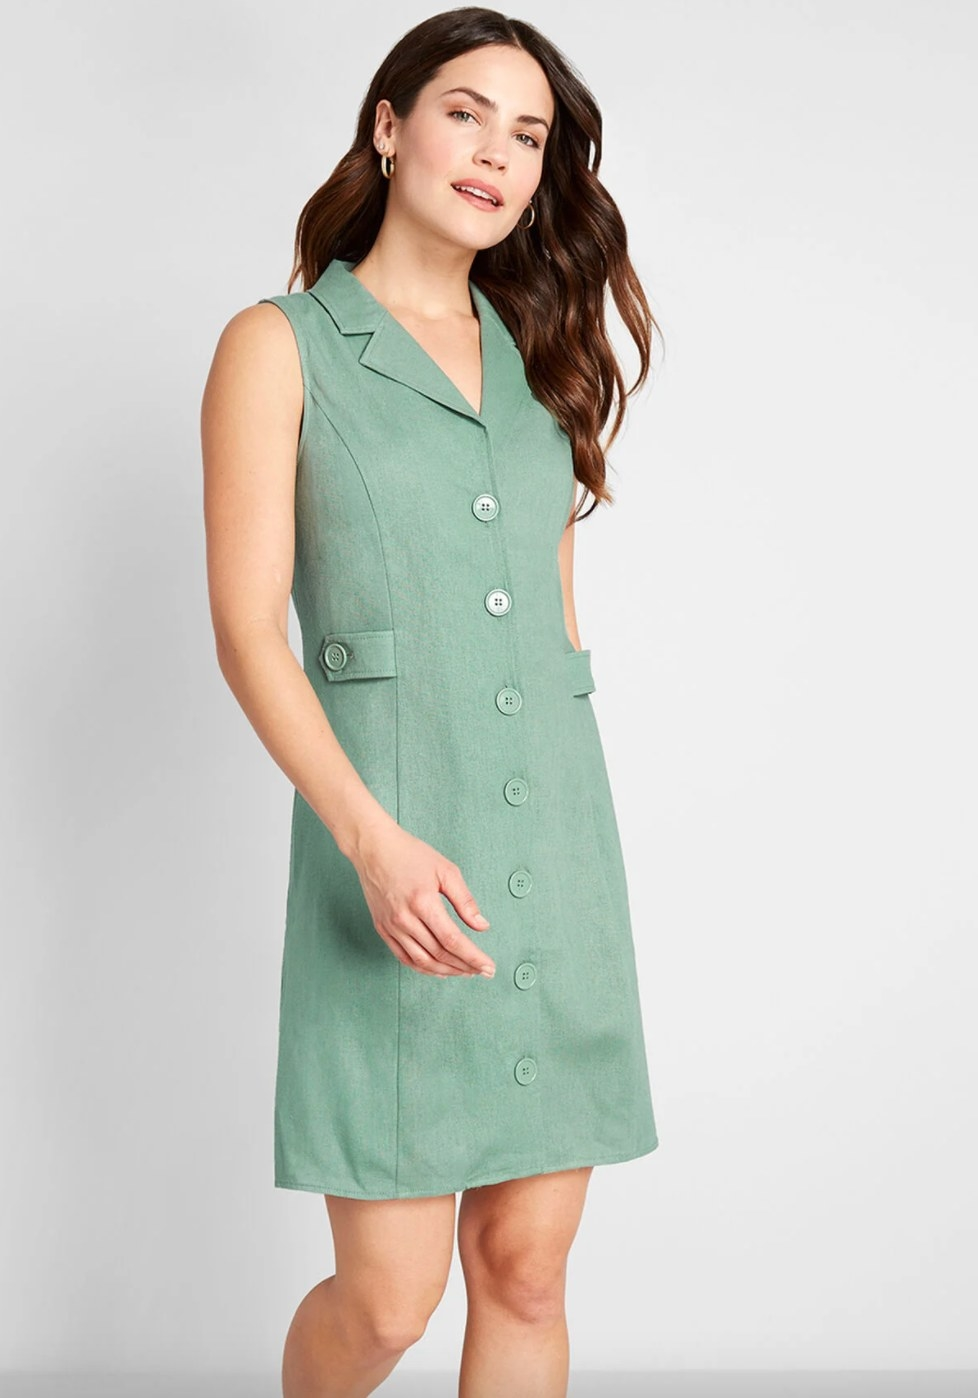 The sleeveless button-front dress in sea green